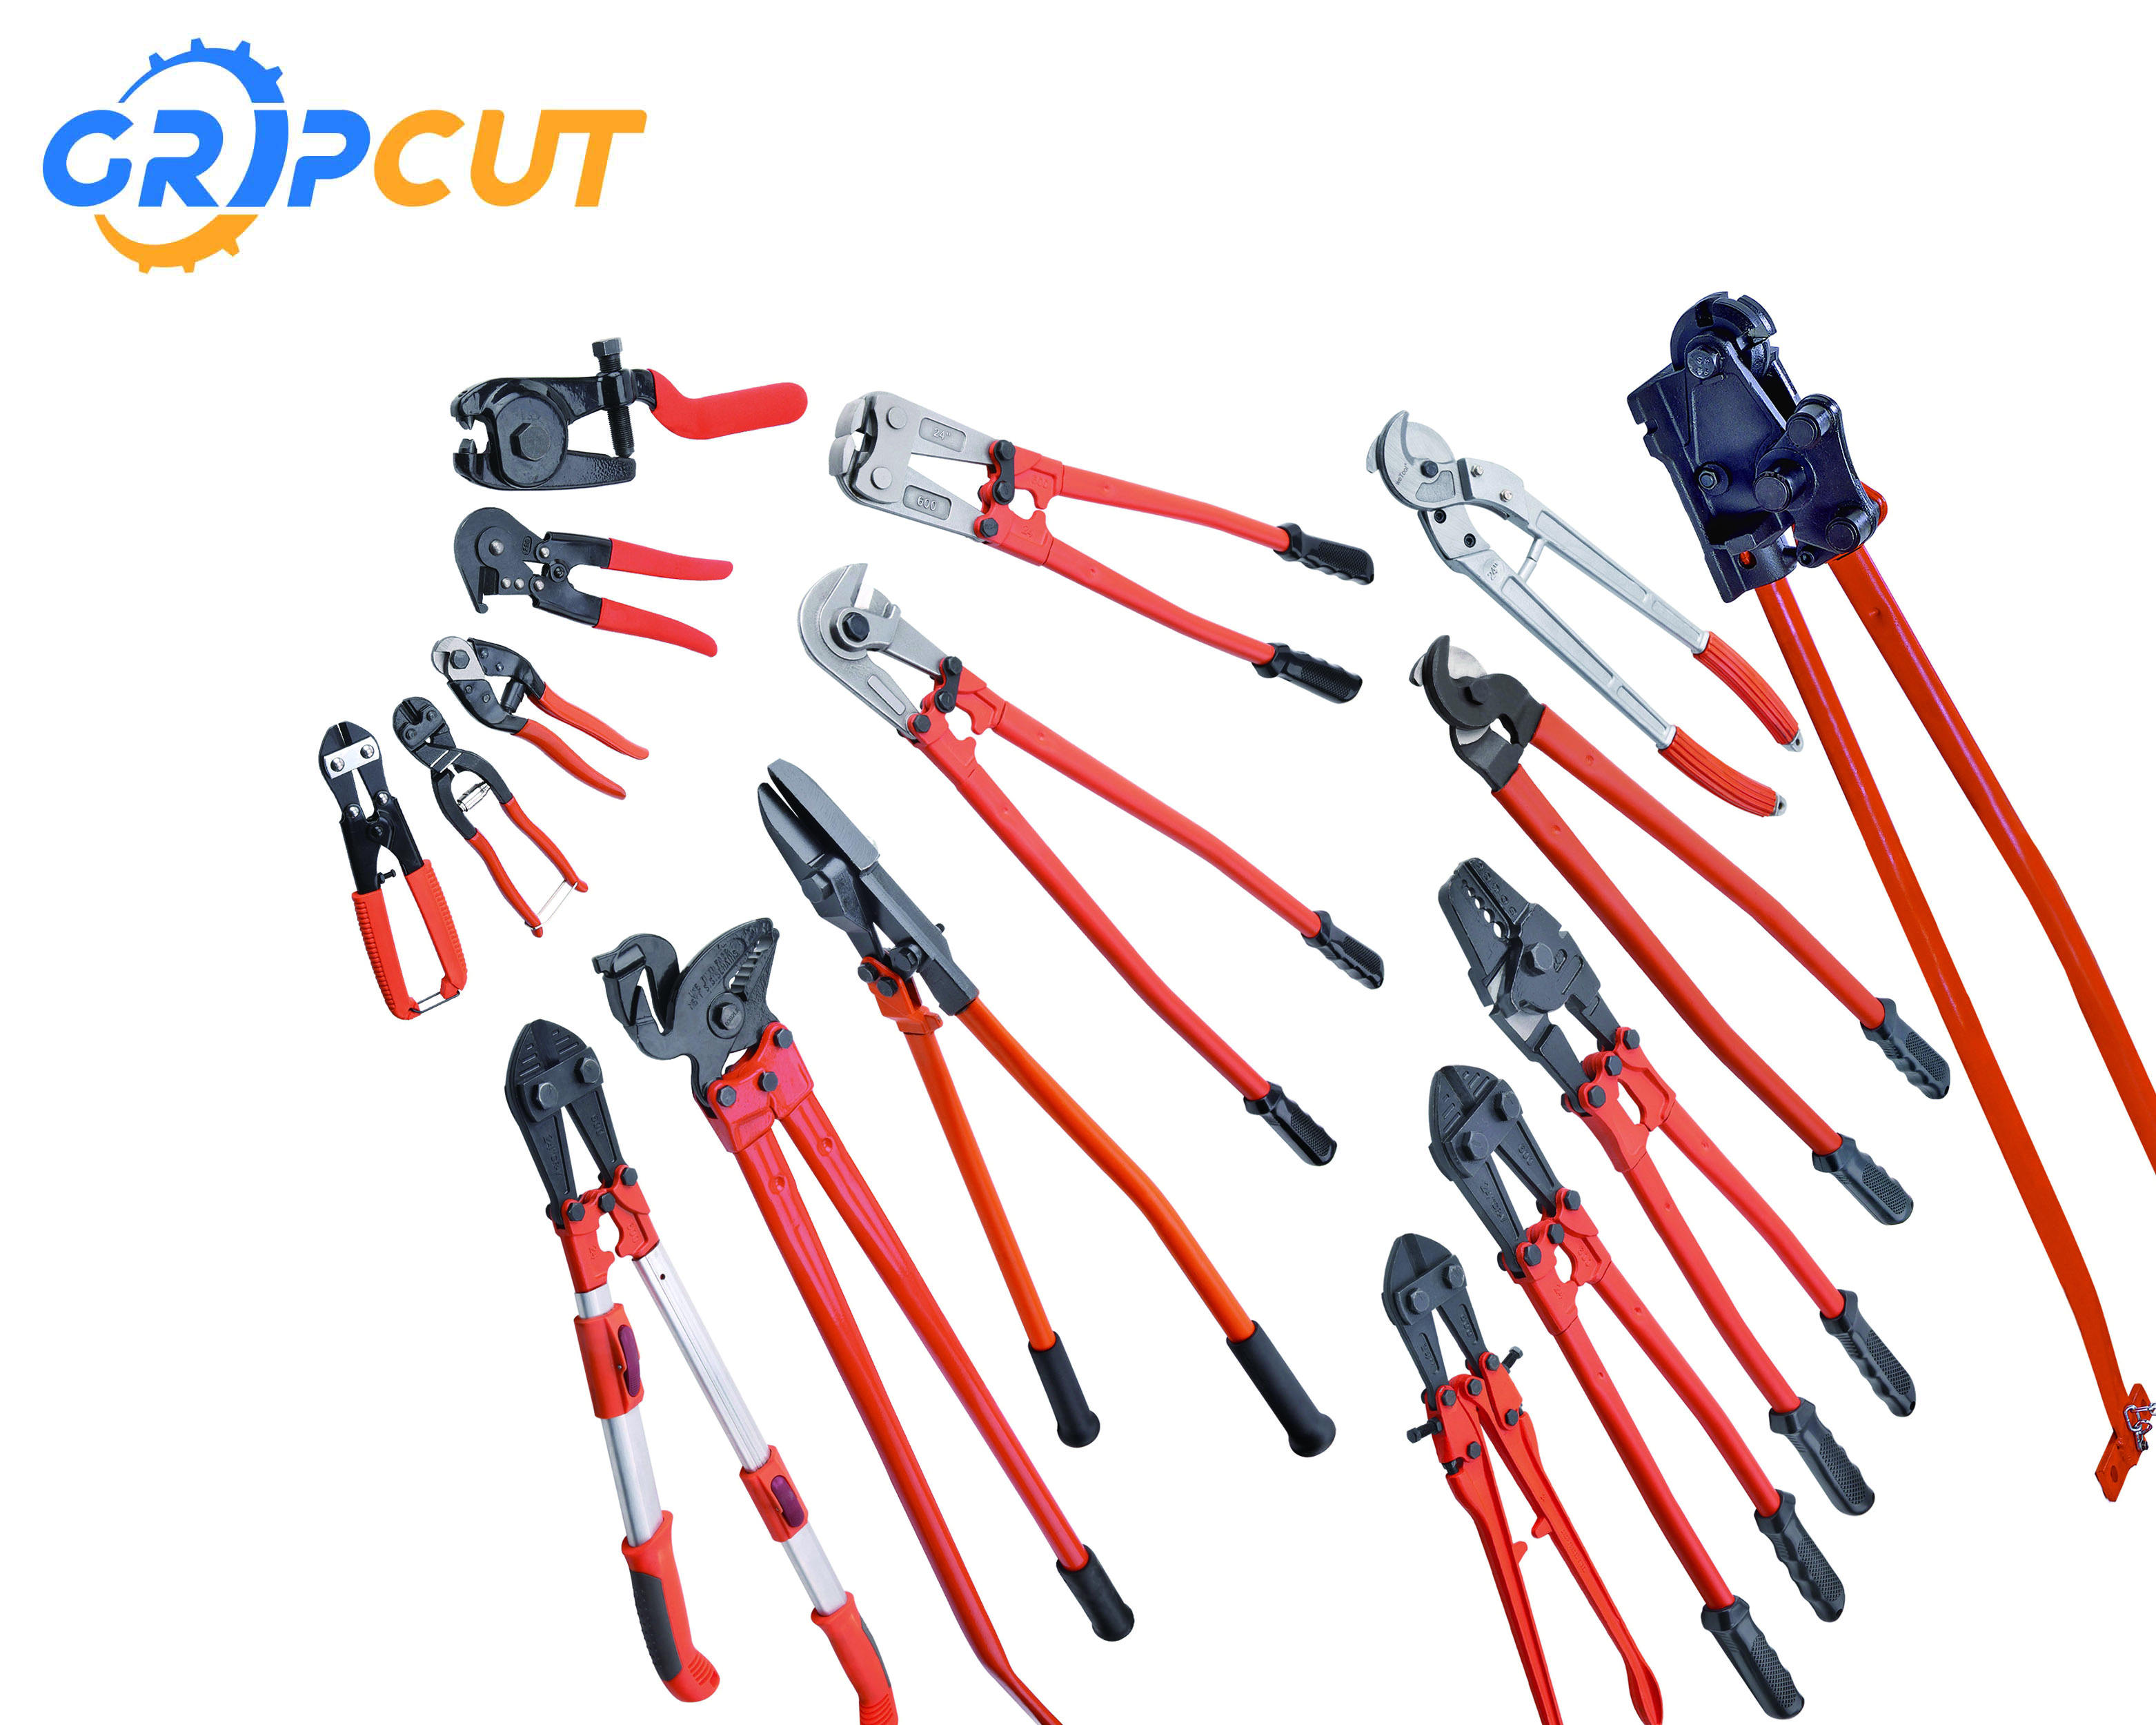 Wholesale price durable hardware hand tools bolt clipper bolt cutter for cutting rebar